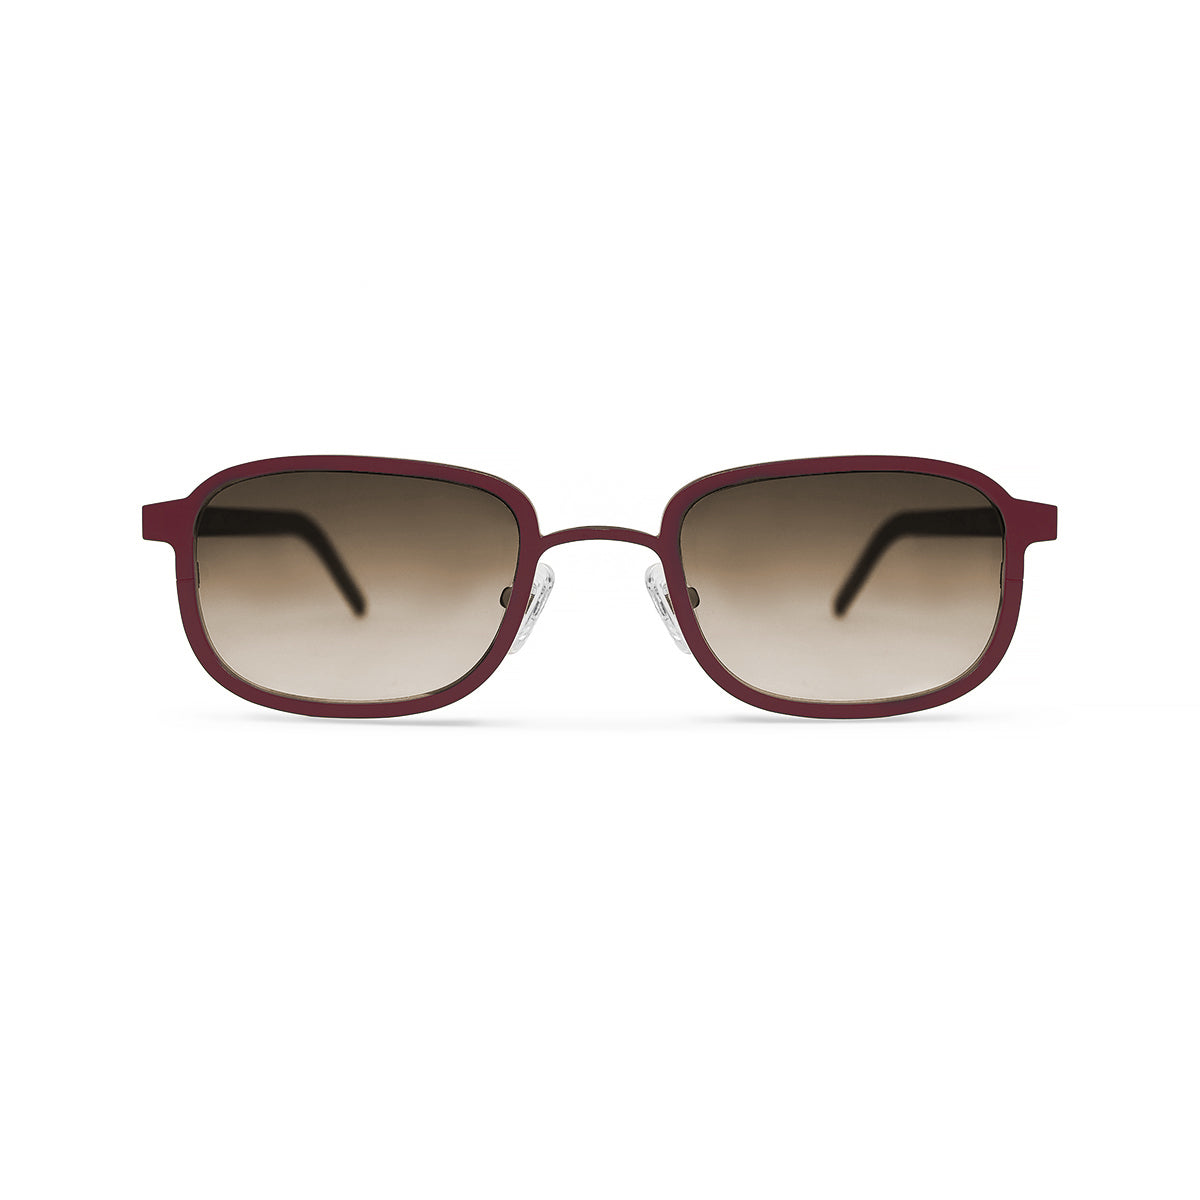 Metal. Crimson. Amber Lens. - BLYSZAK eyewear eyewear - eyewear, optical, sunglasses